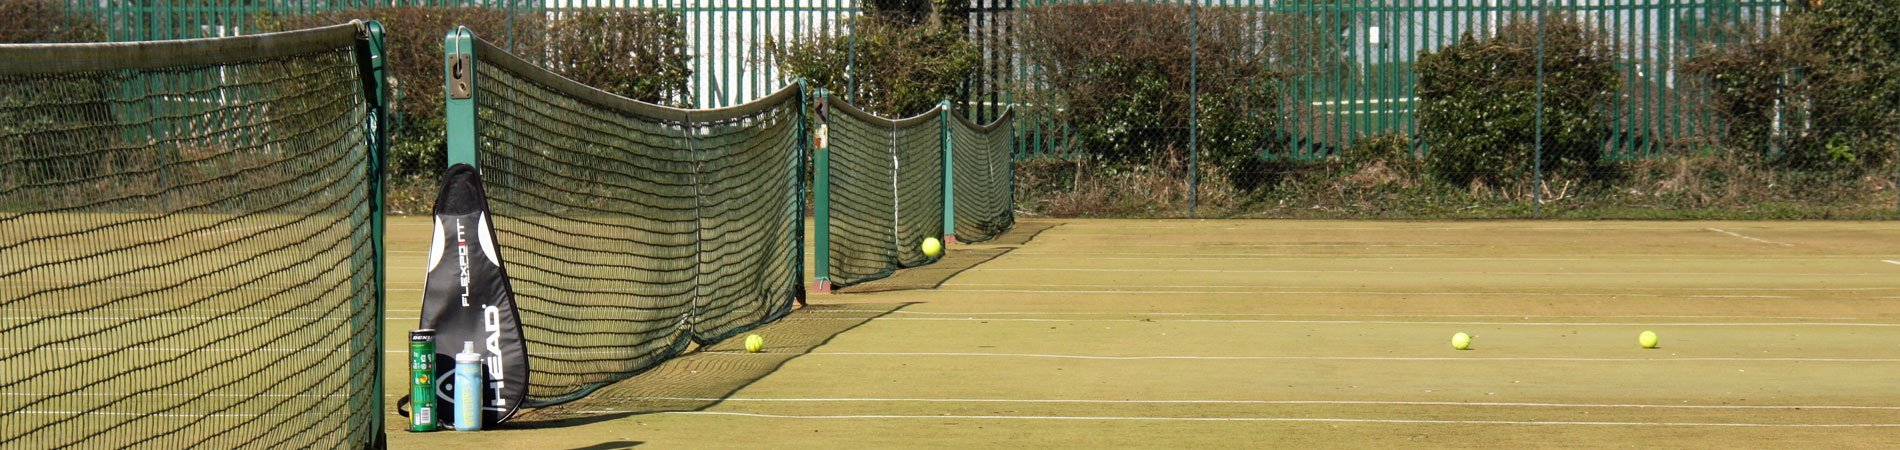 The courts at Pocklington Tennis Club